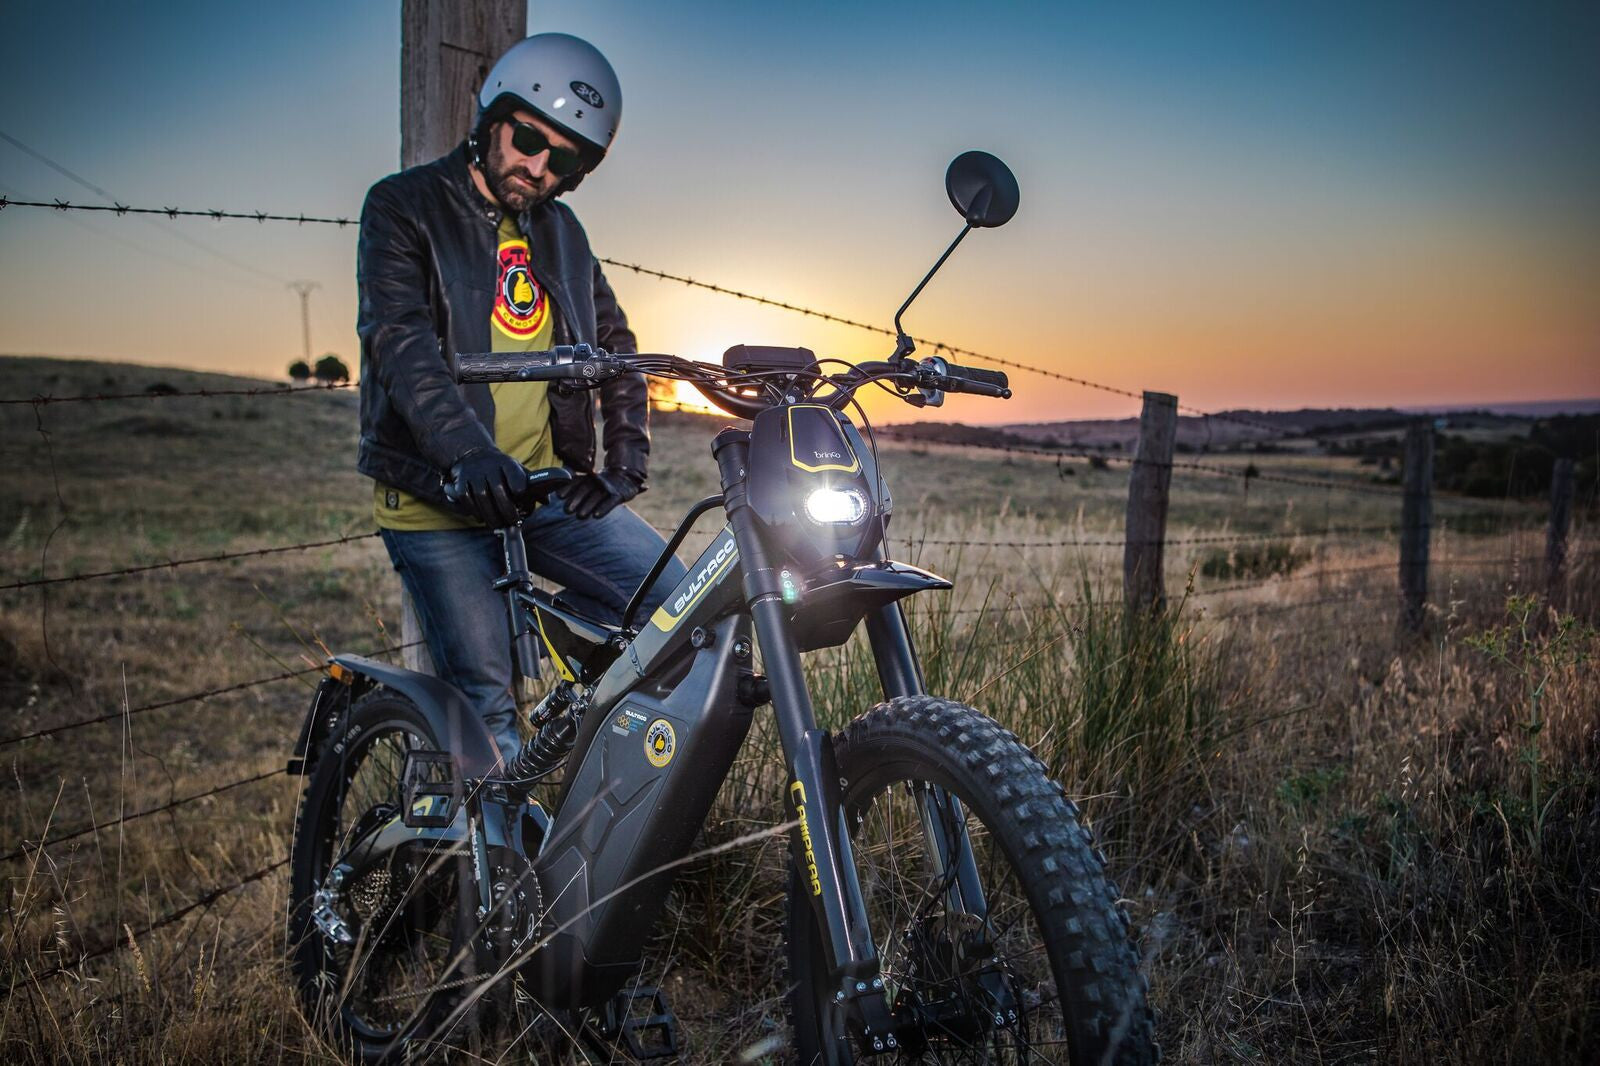 Bultaco Brinco C Restyle Night Time Shoot 5